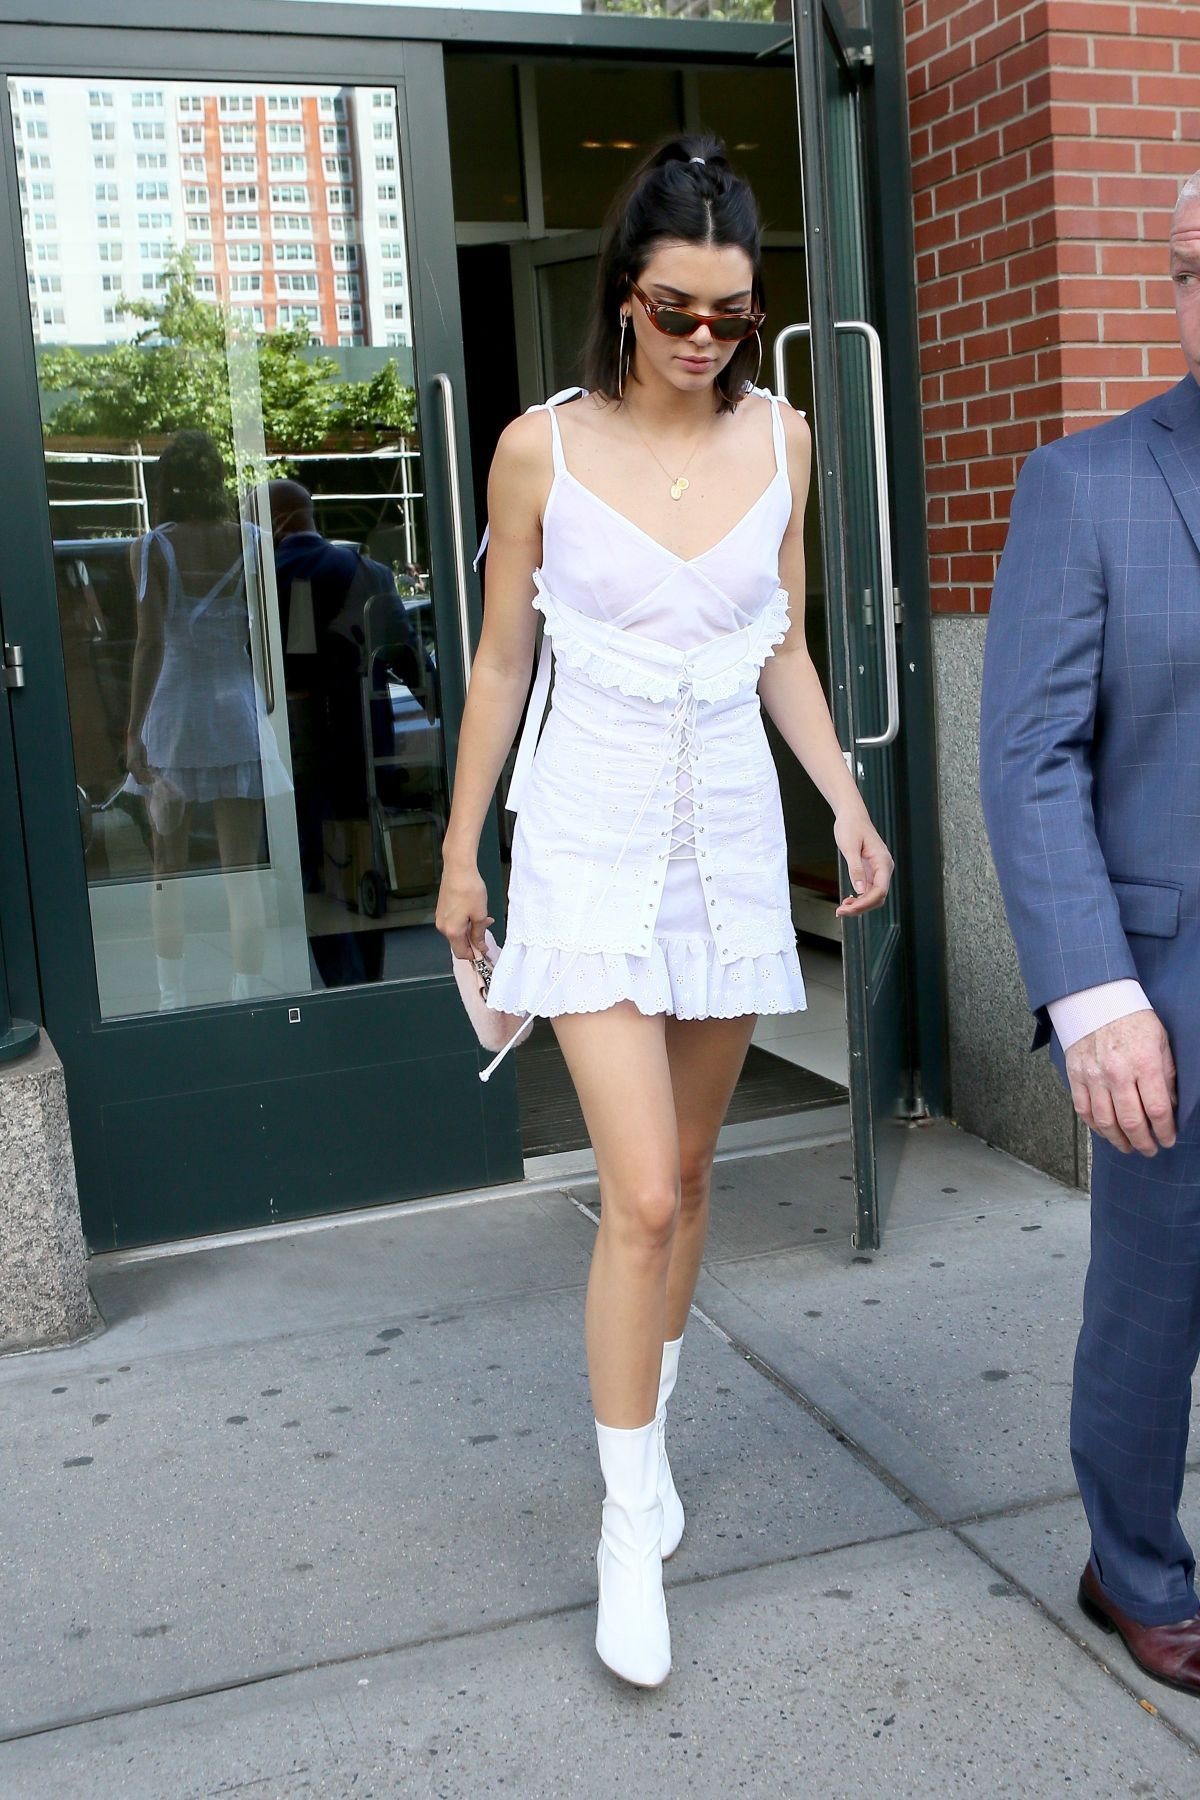 038085474_Kendall_Jenner_See_Through_1_thefappeningblog.com__123_521lo.jpg